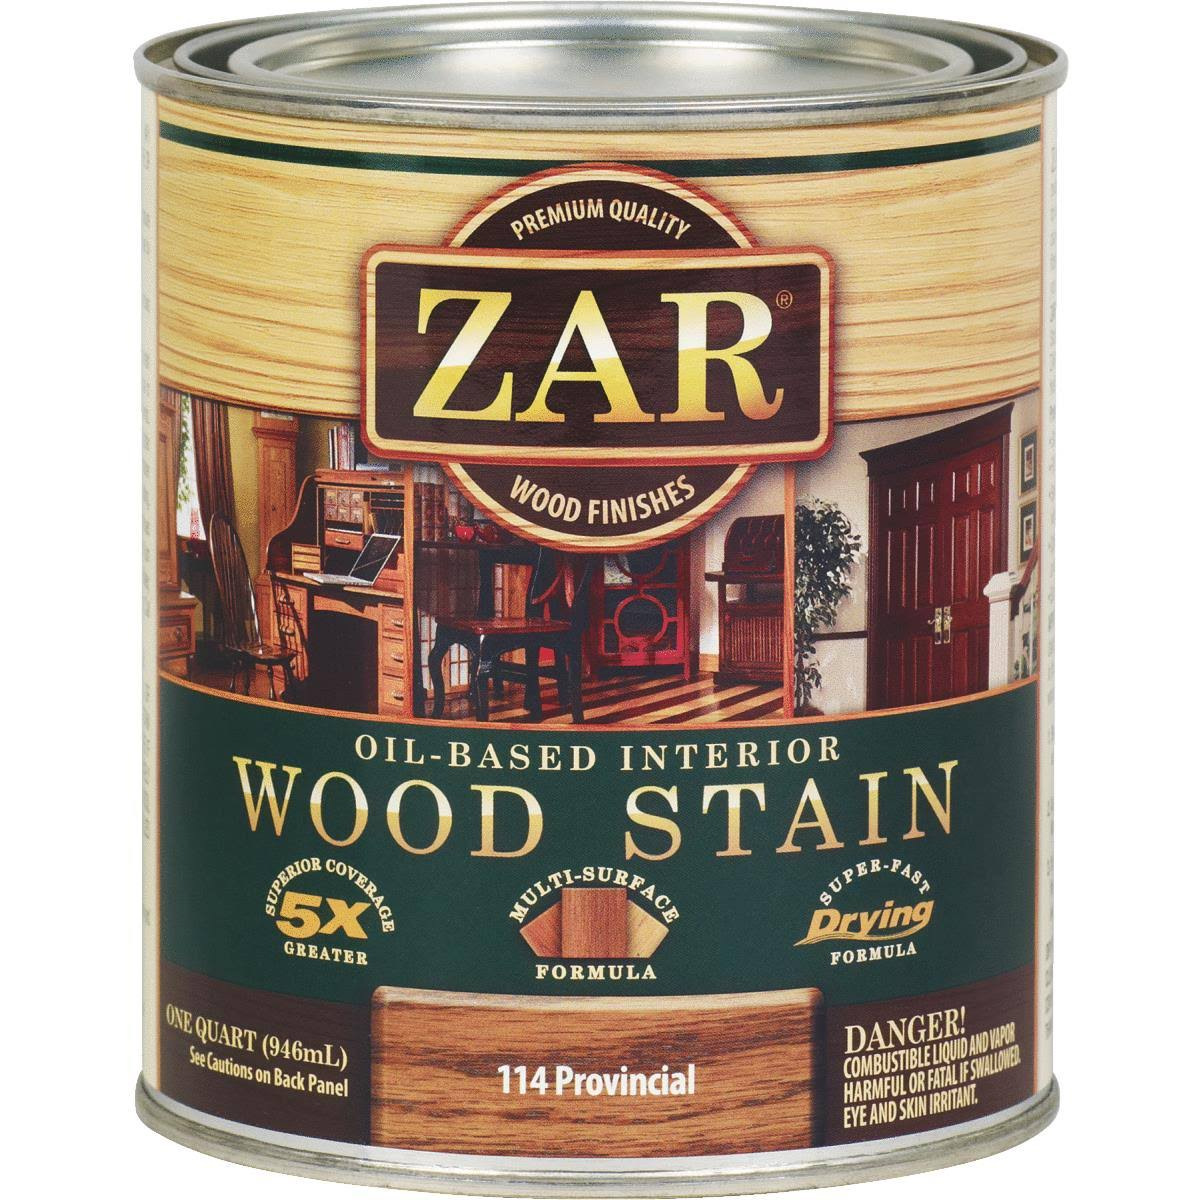 United Gilsonite Zar Oil Based Wood Stain - 114 Provincial